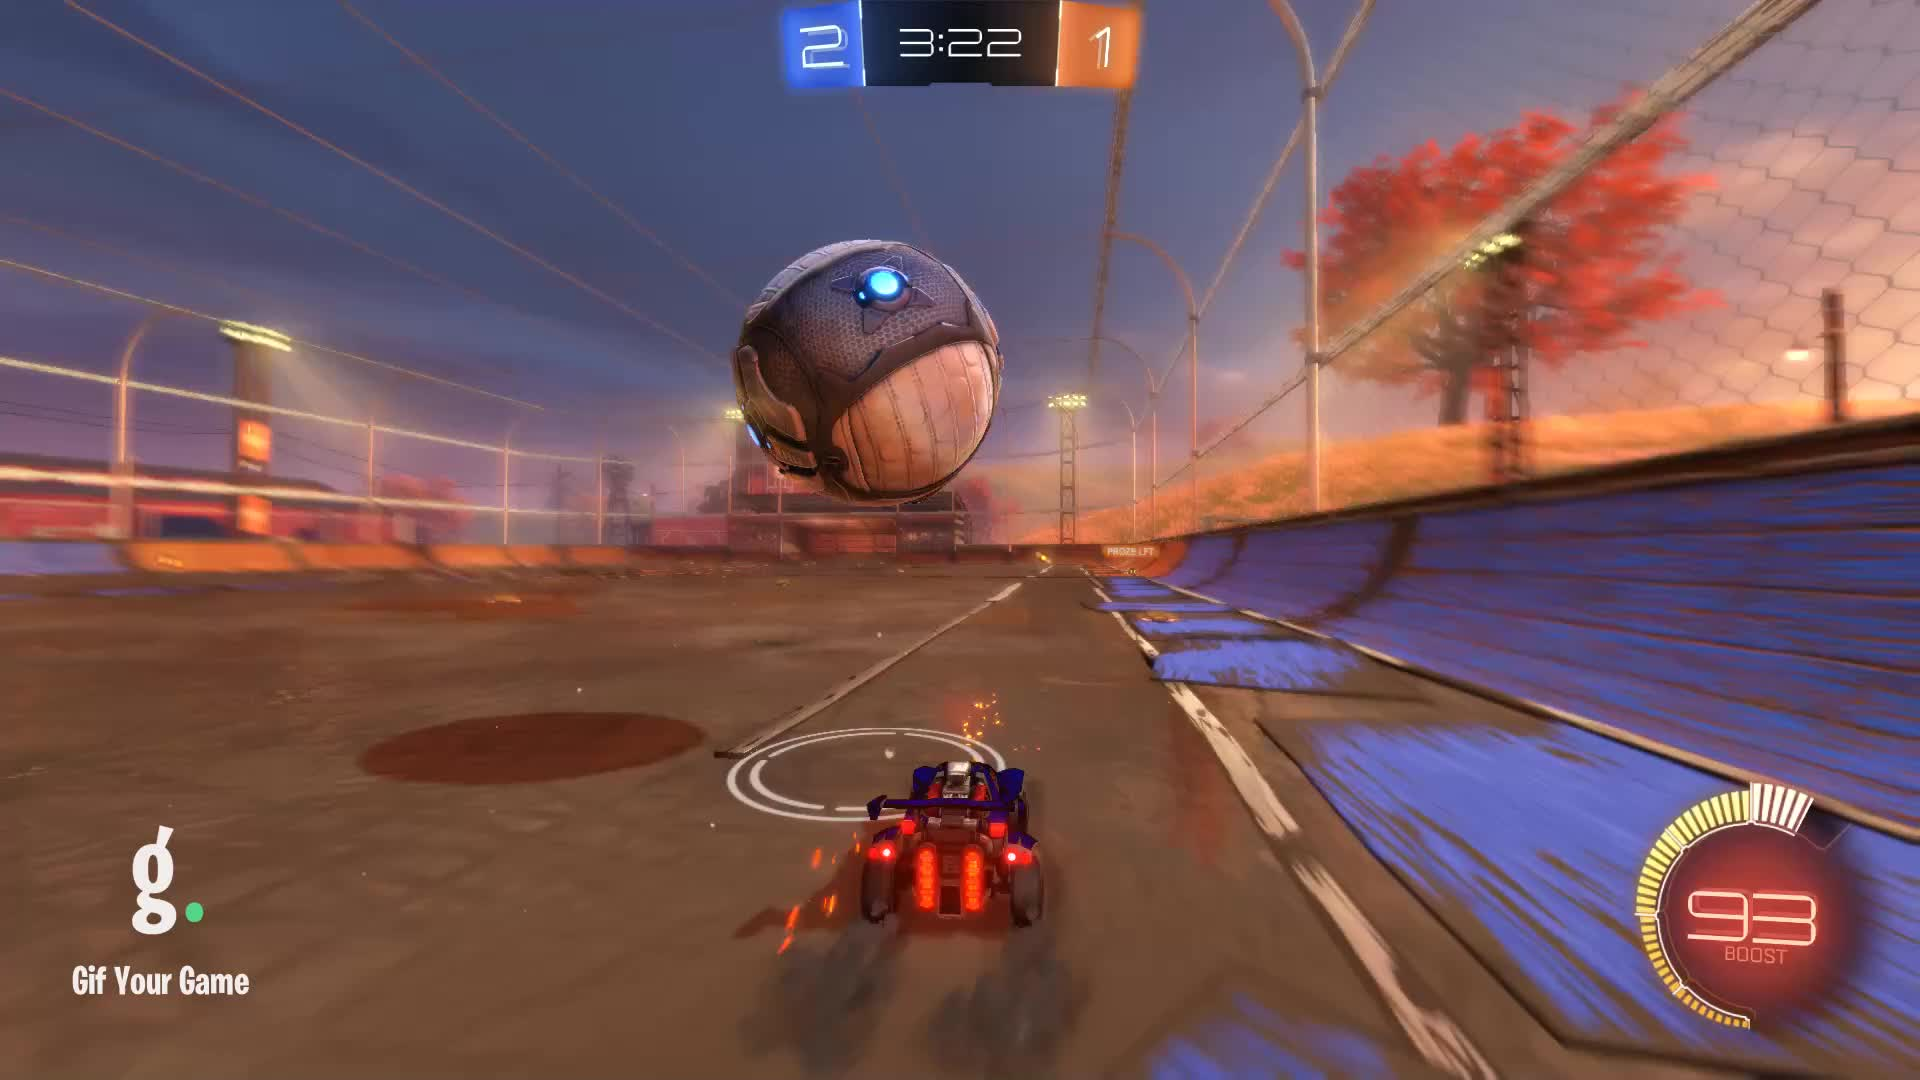 Cawth, Gif Your Game, GifYourGame, Goal, Rocket League, RocketLeague, Goal 4: Cawth GIFs